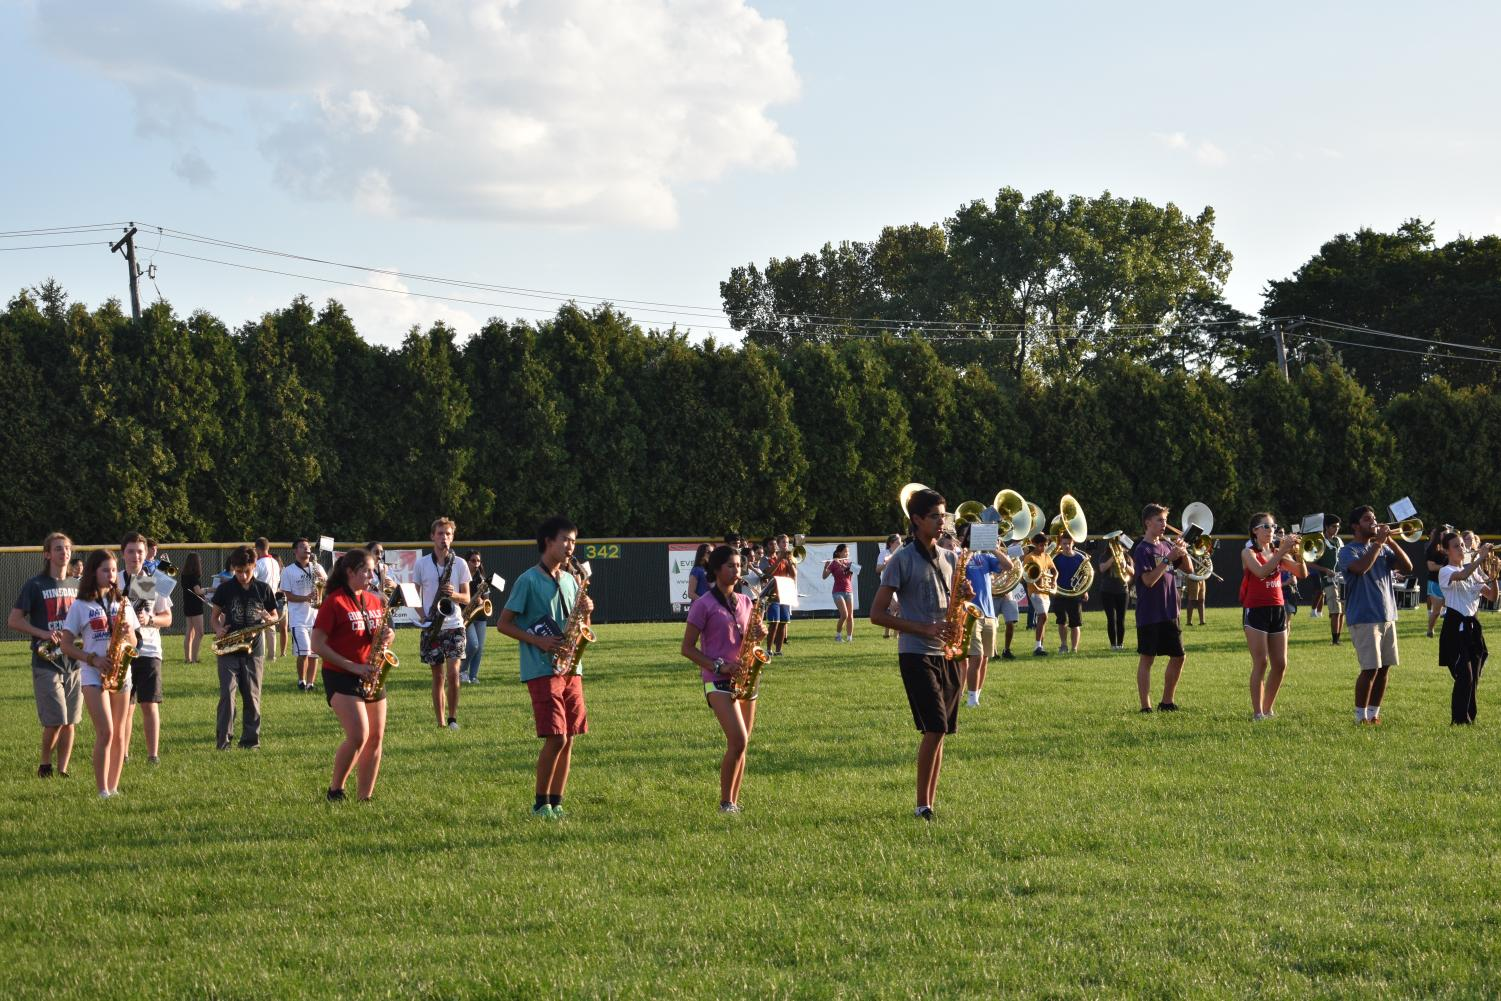 The band and color guard had practice on Tuesday, Sept. 4 in order to prepare for the first football home game on Friday, Sept. 7.